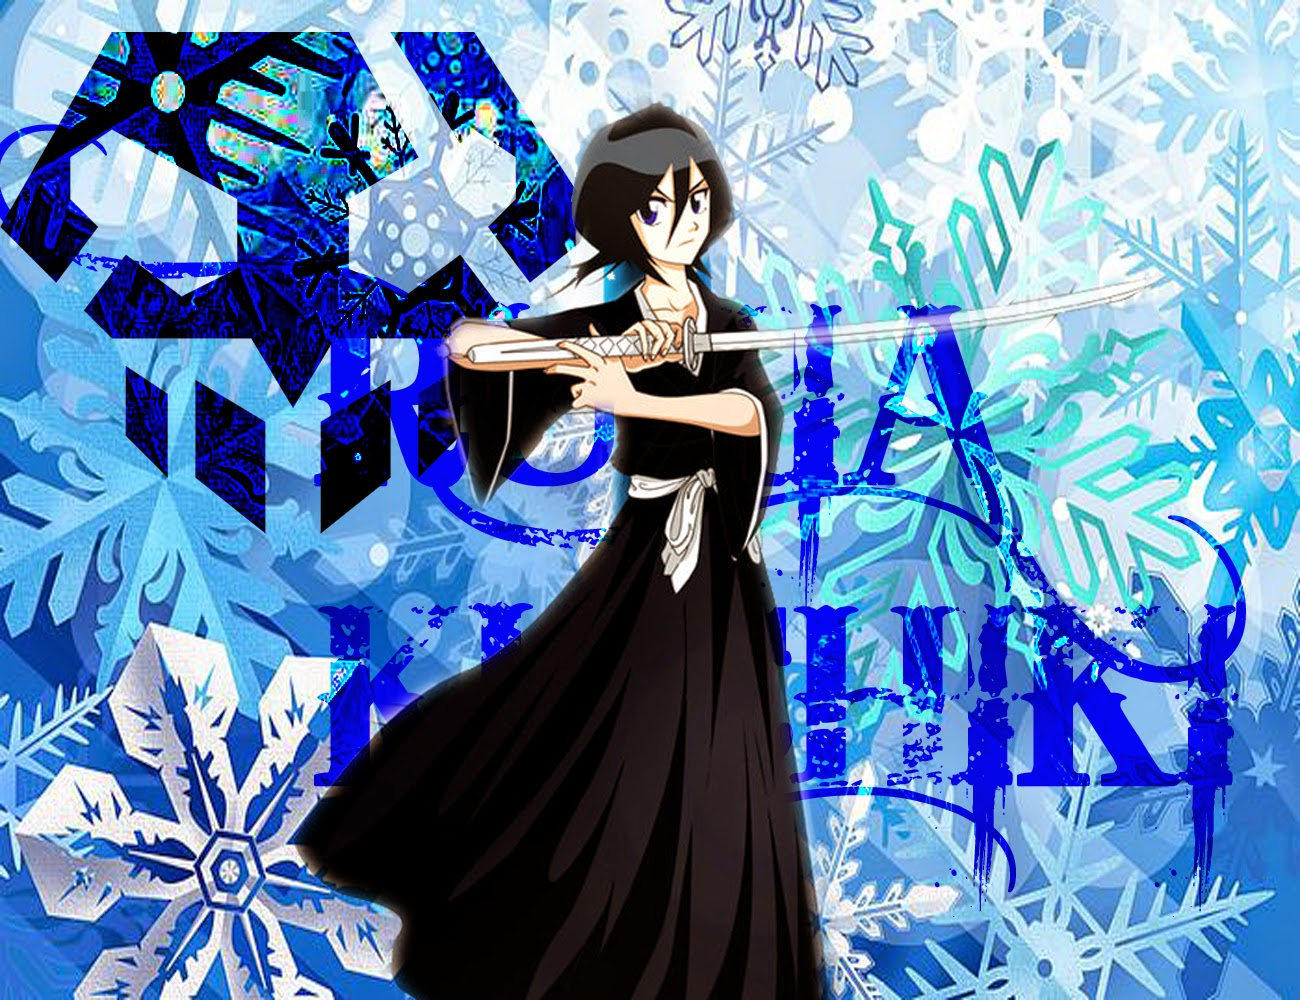 Wallpaper Rukia Kuchiki (Bleach)